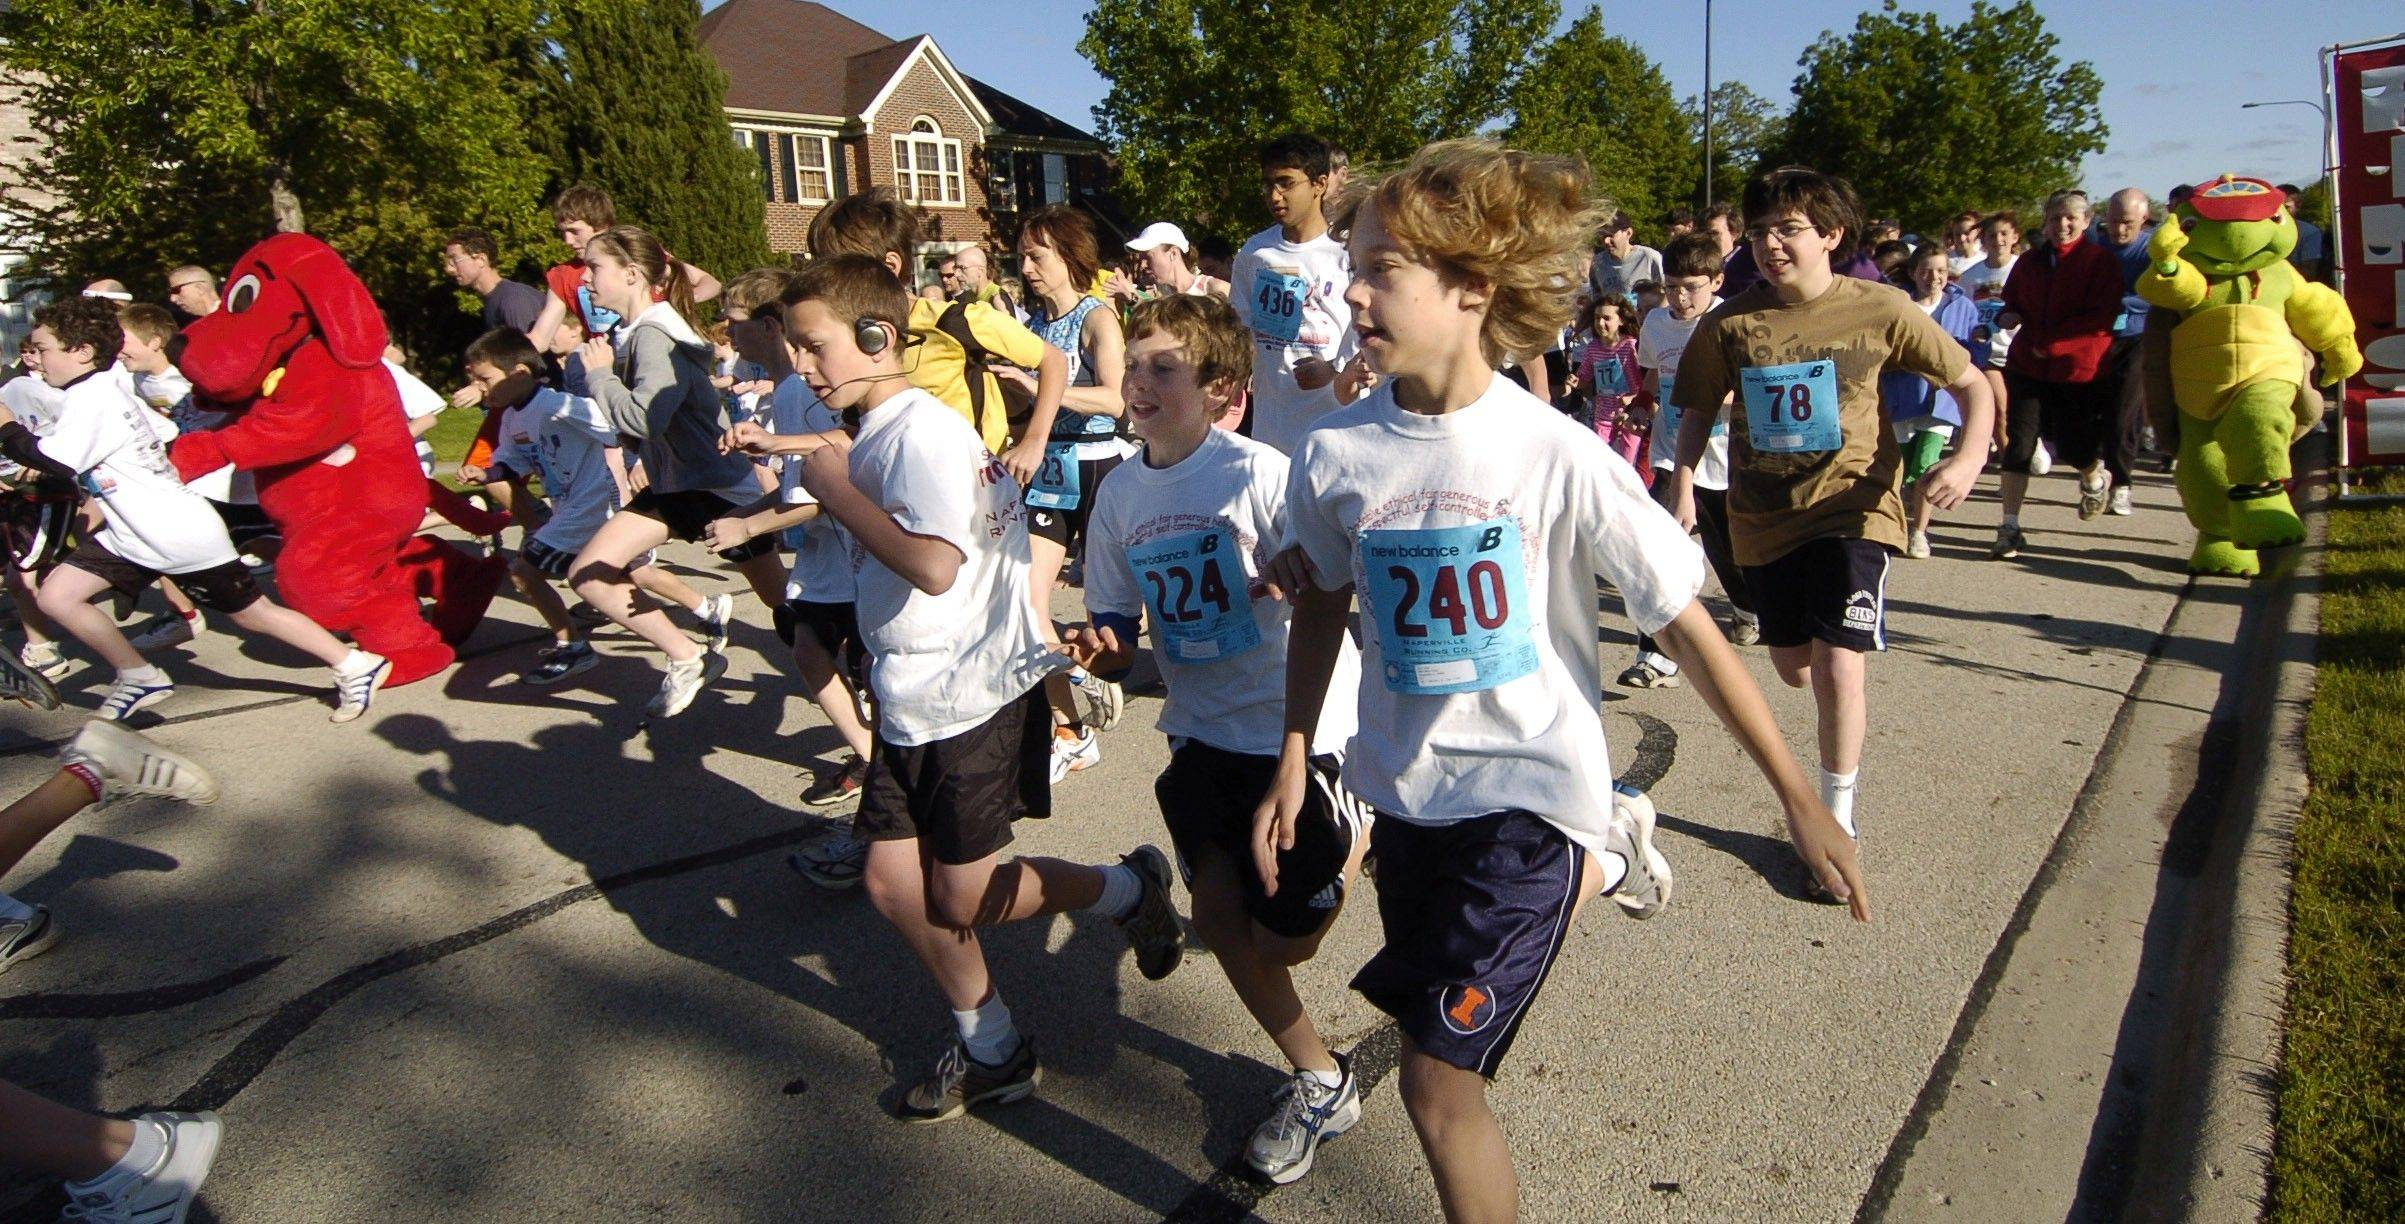 Runners take off in the 2009 Jeanine Nicarico Run for Reading. Organizers of the Naperville fundraiser hope to draw a record-breaking crowd for its 10th race on Sunday, May 15.